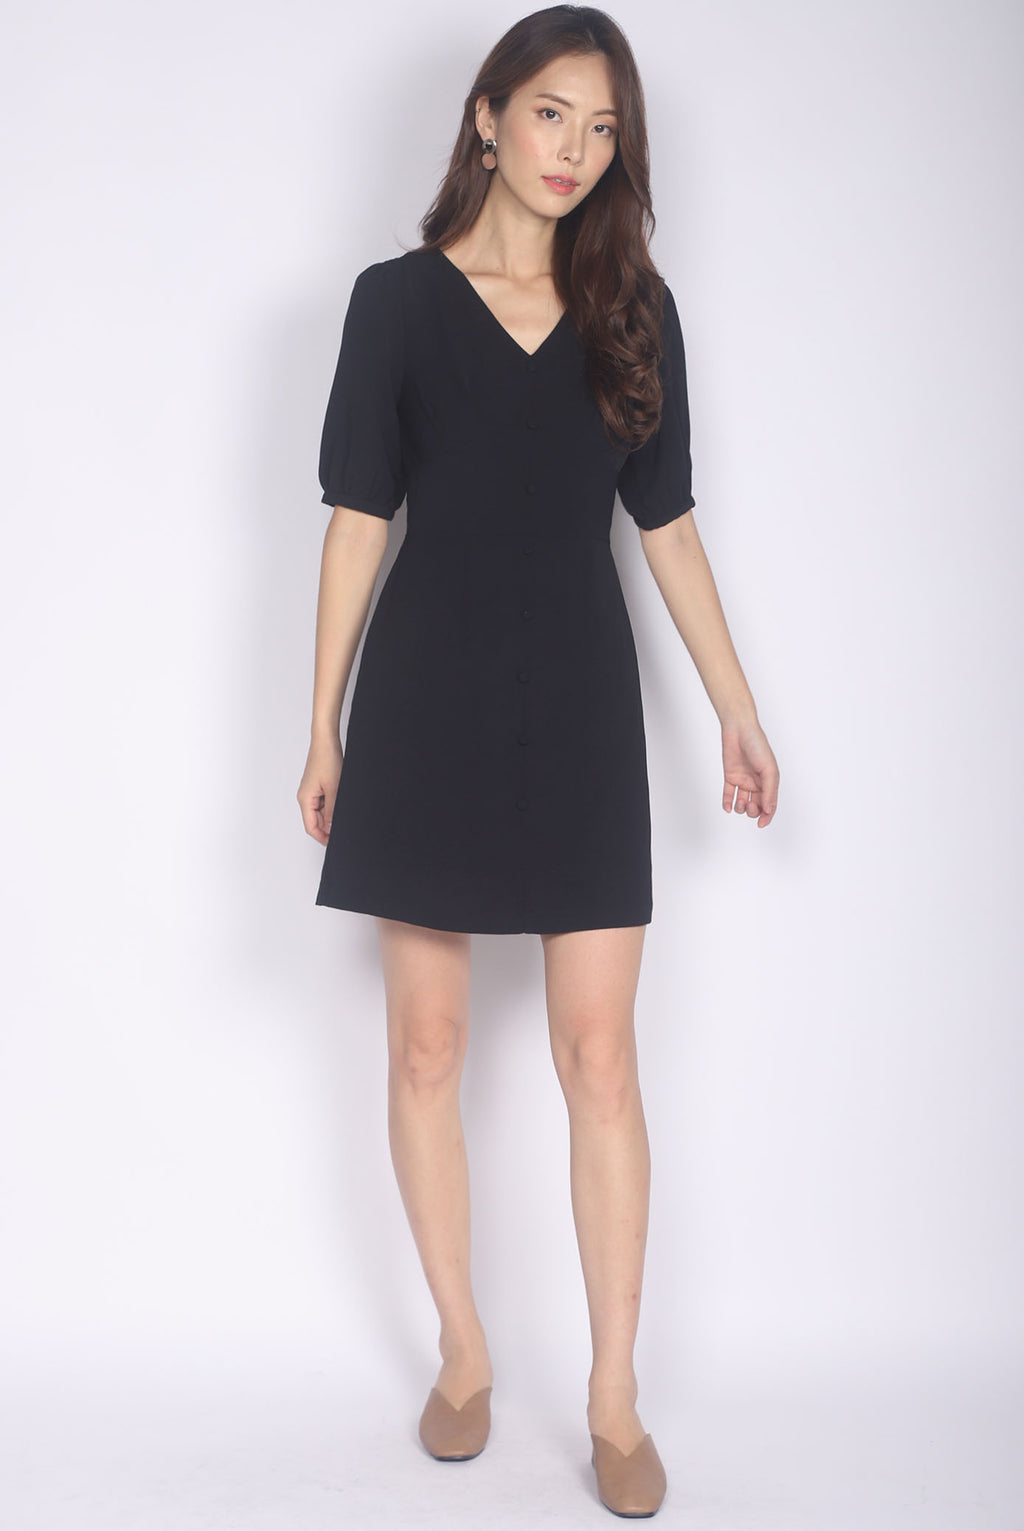 Mertice Sleeved Buttons Dress In Black